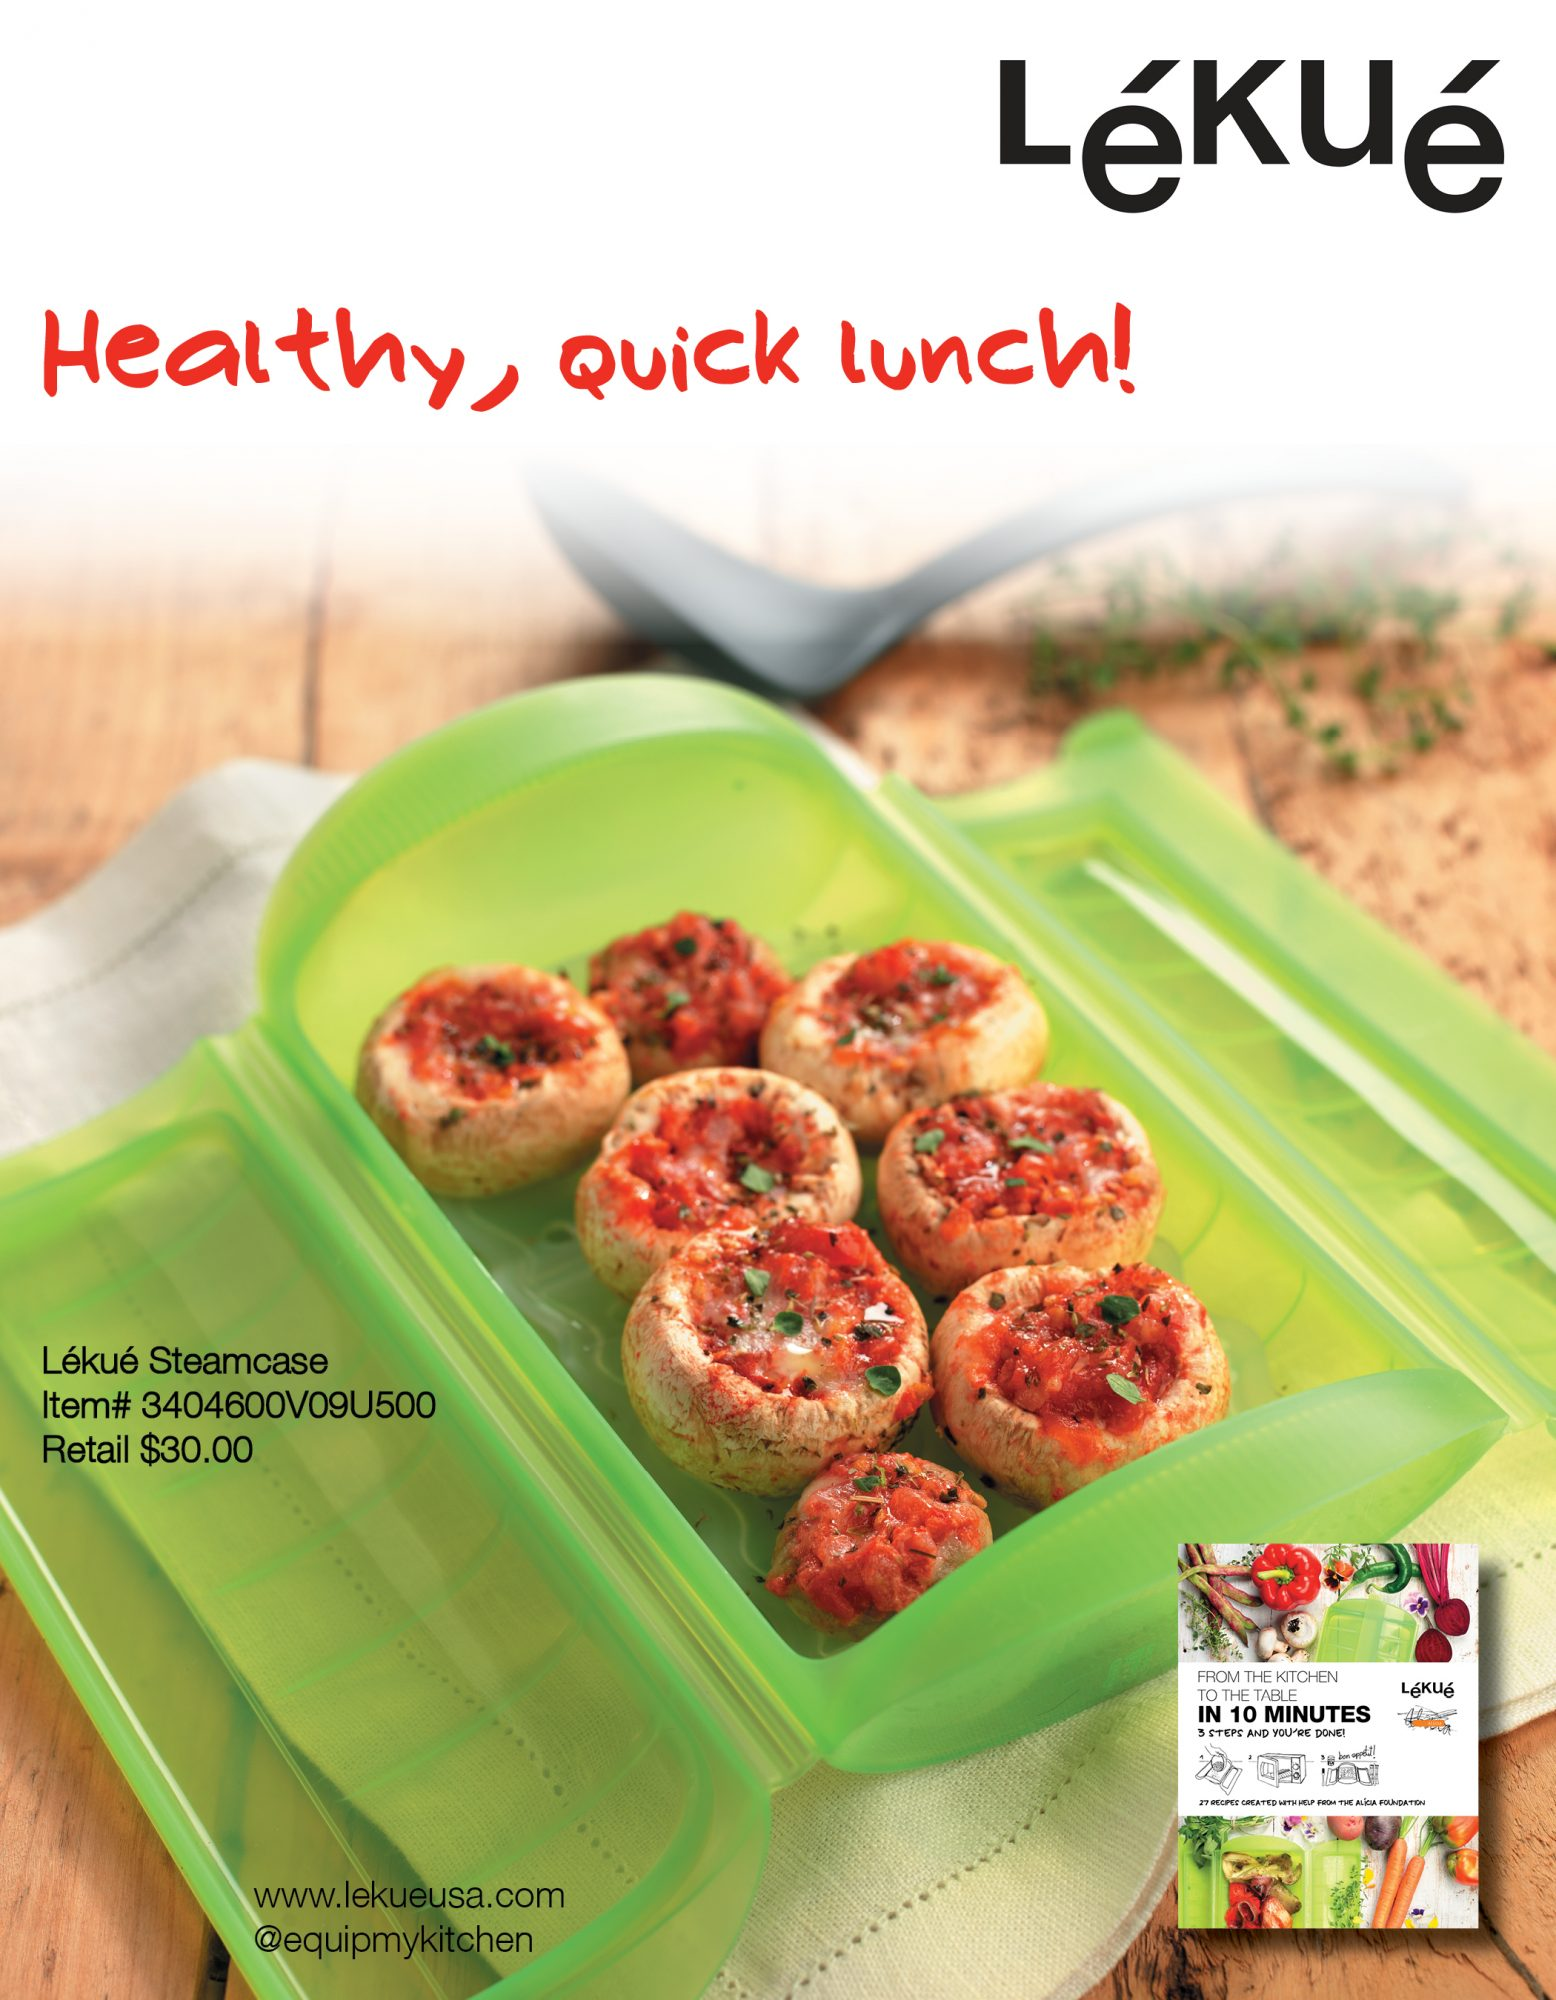 healthy-quick-lunch-e-postcard-05-2014.jpg